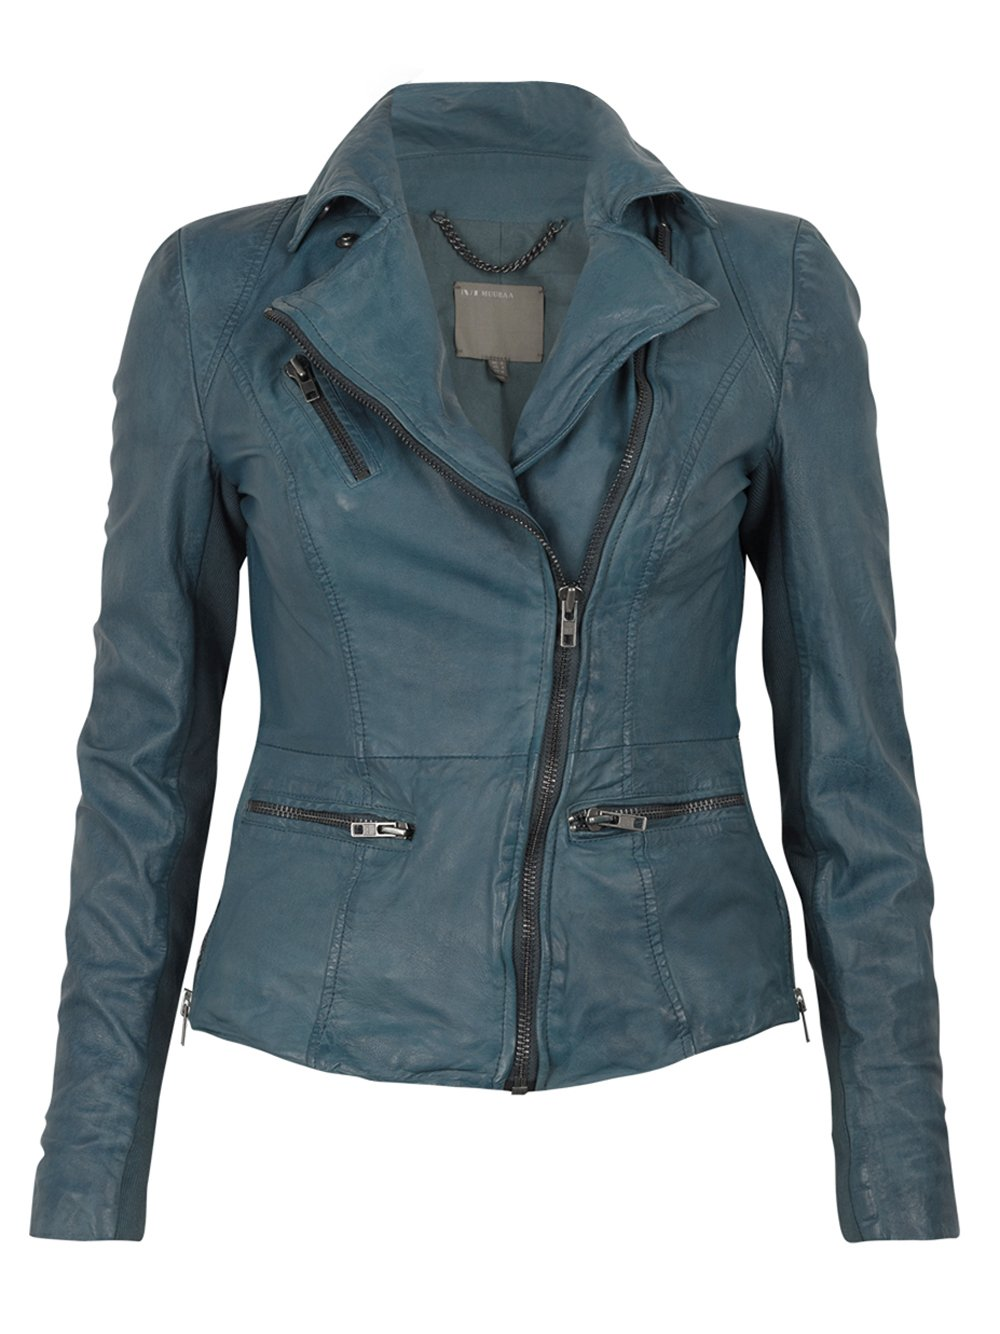 Teal leather jacket